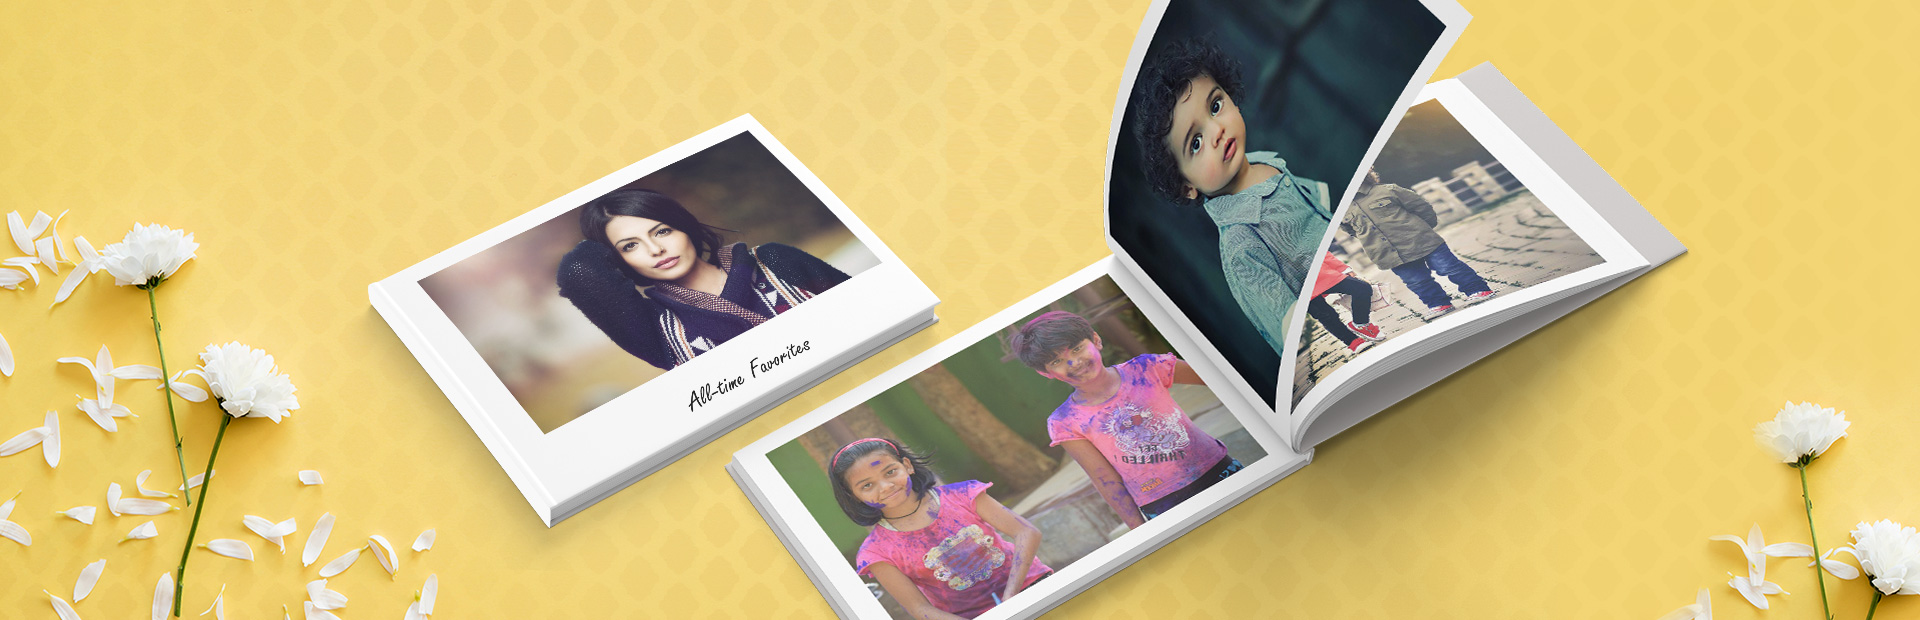 New Age White Personalized Photo Books Online